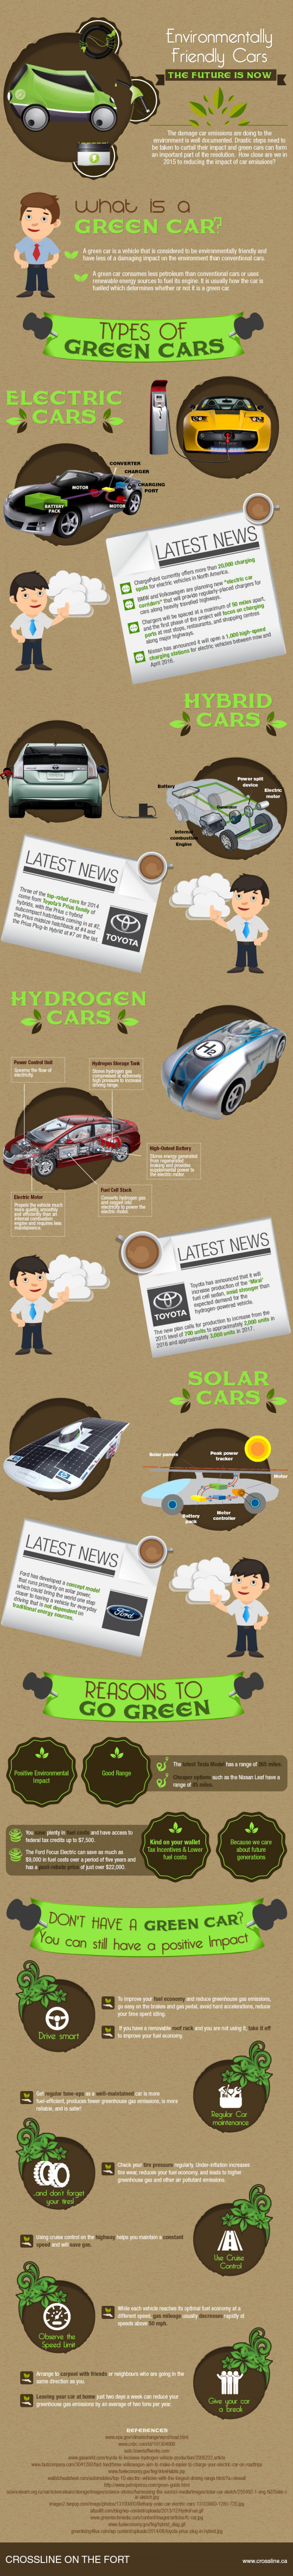 Environmentally Friendly Cars : The Future is Now